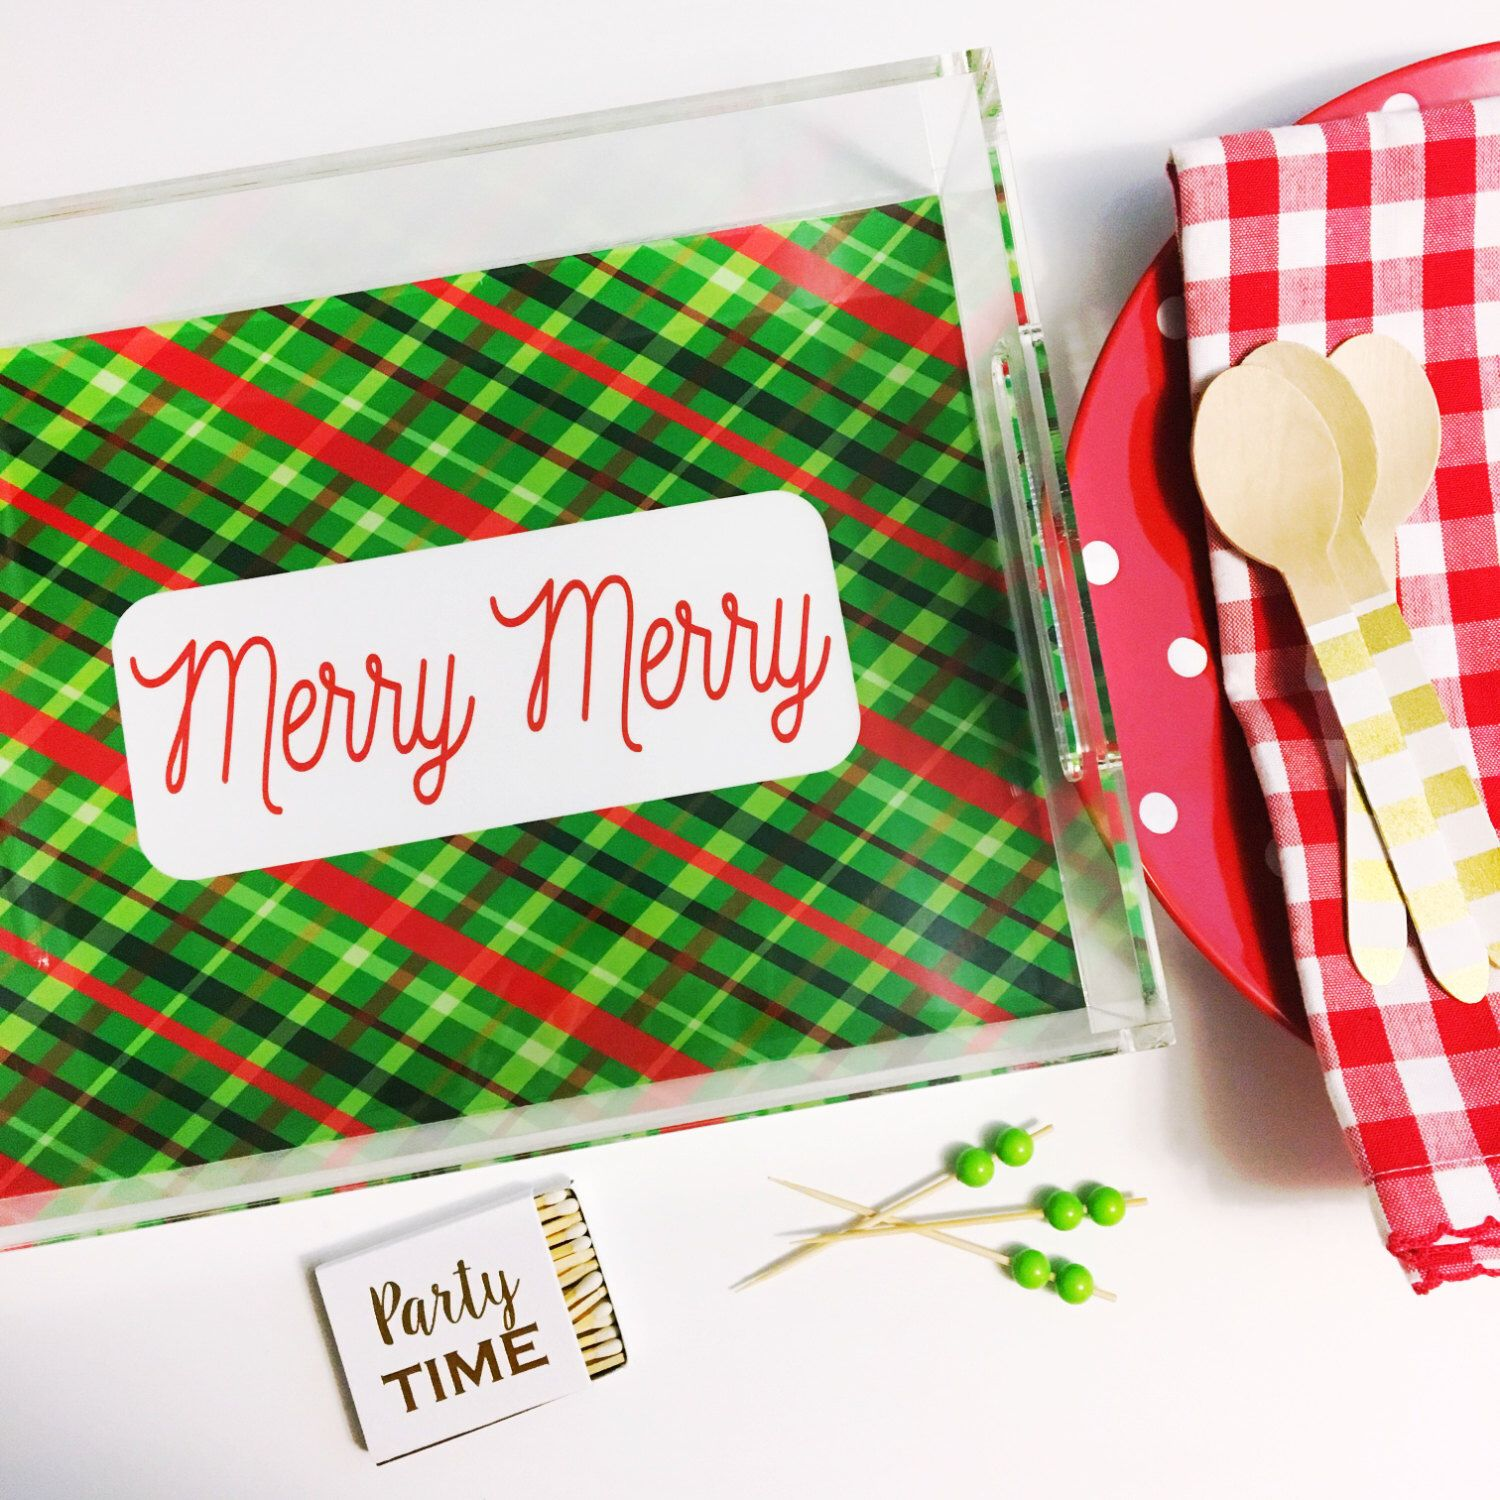 Holiday serving tray 🎄 https://www.etsy.com/listing/488408981/merry-merry-christmas-tray-holiday-plaid